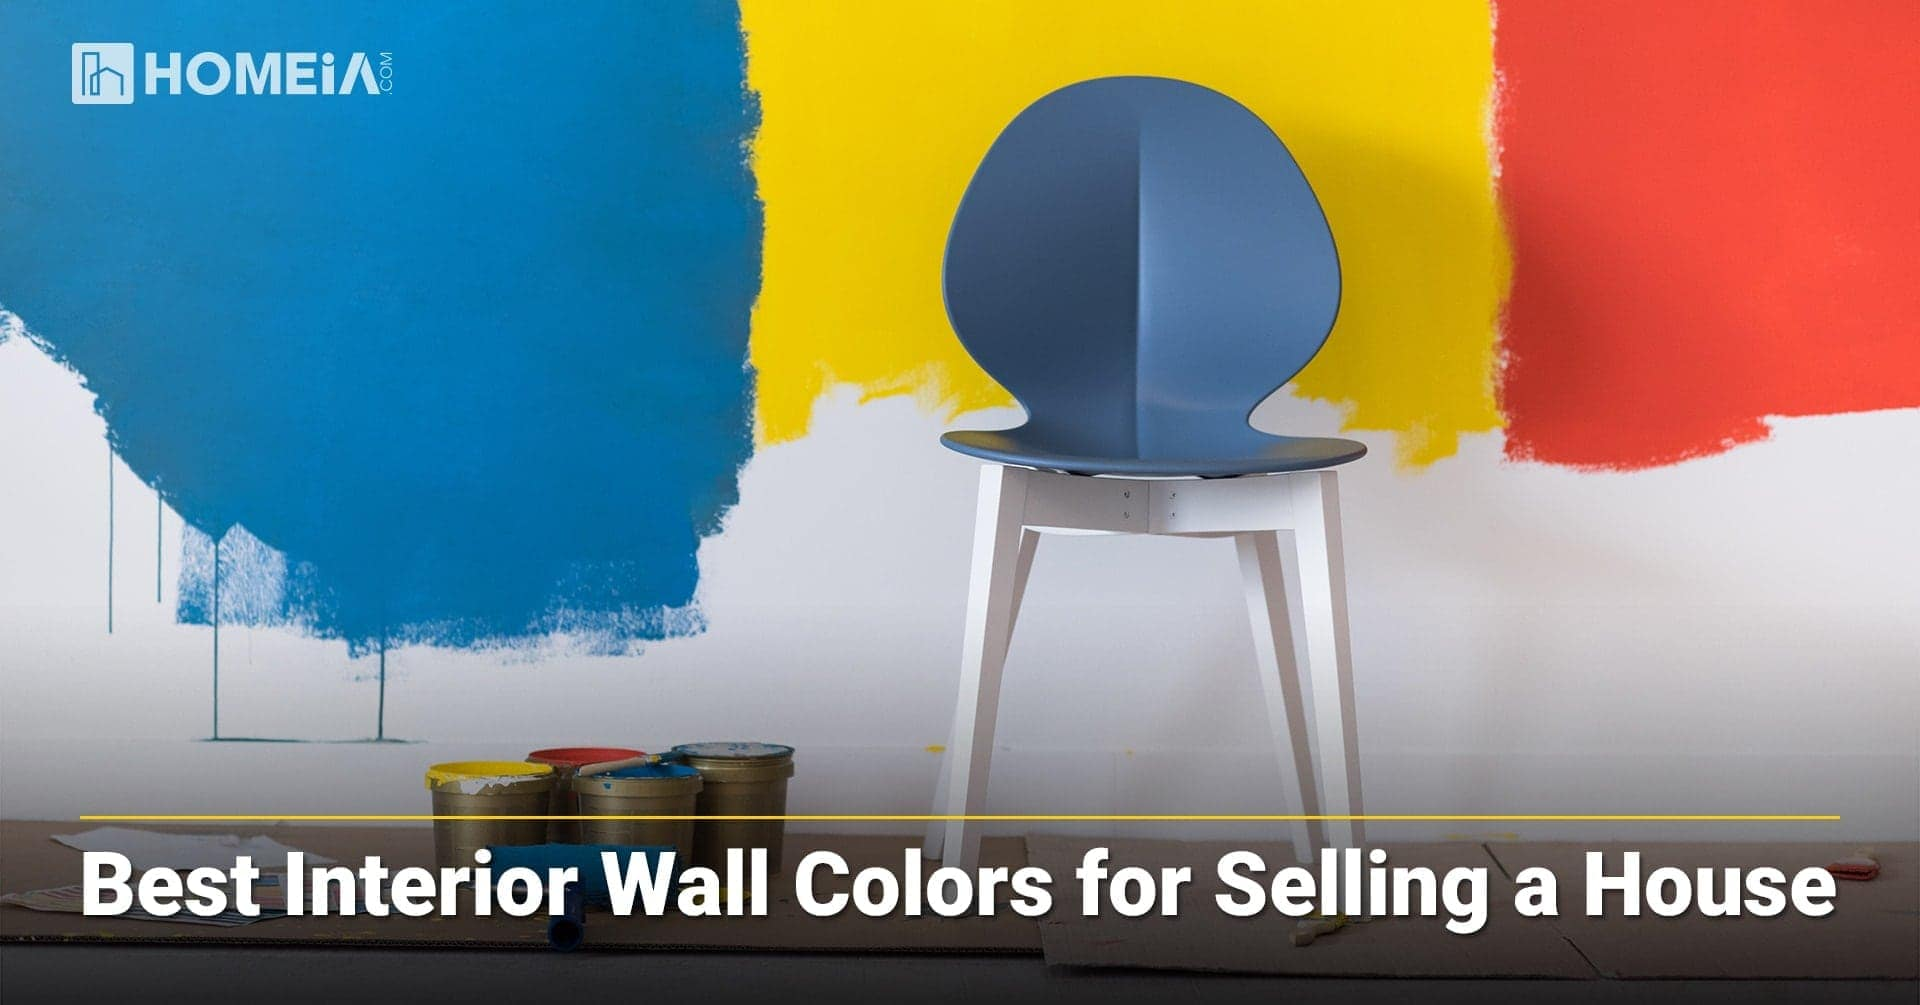 Best Interior Wall Colors for Selling a House